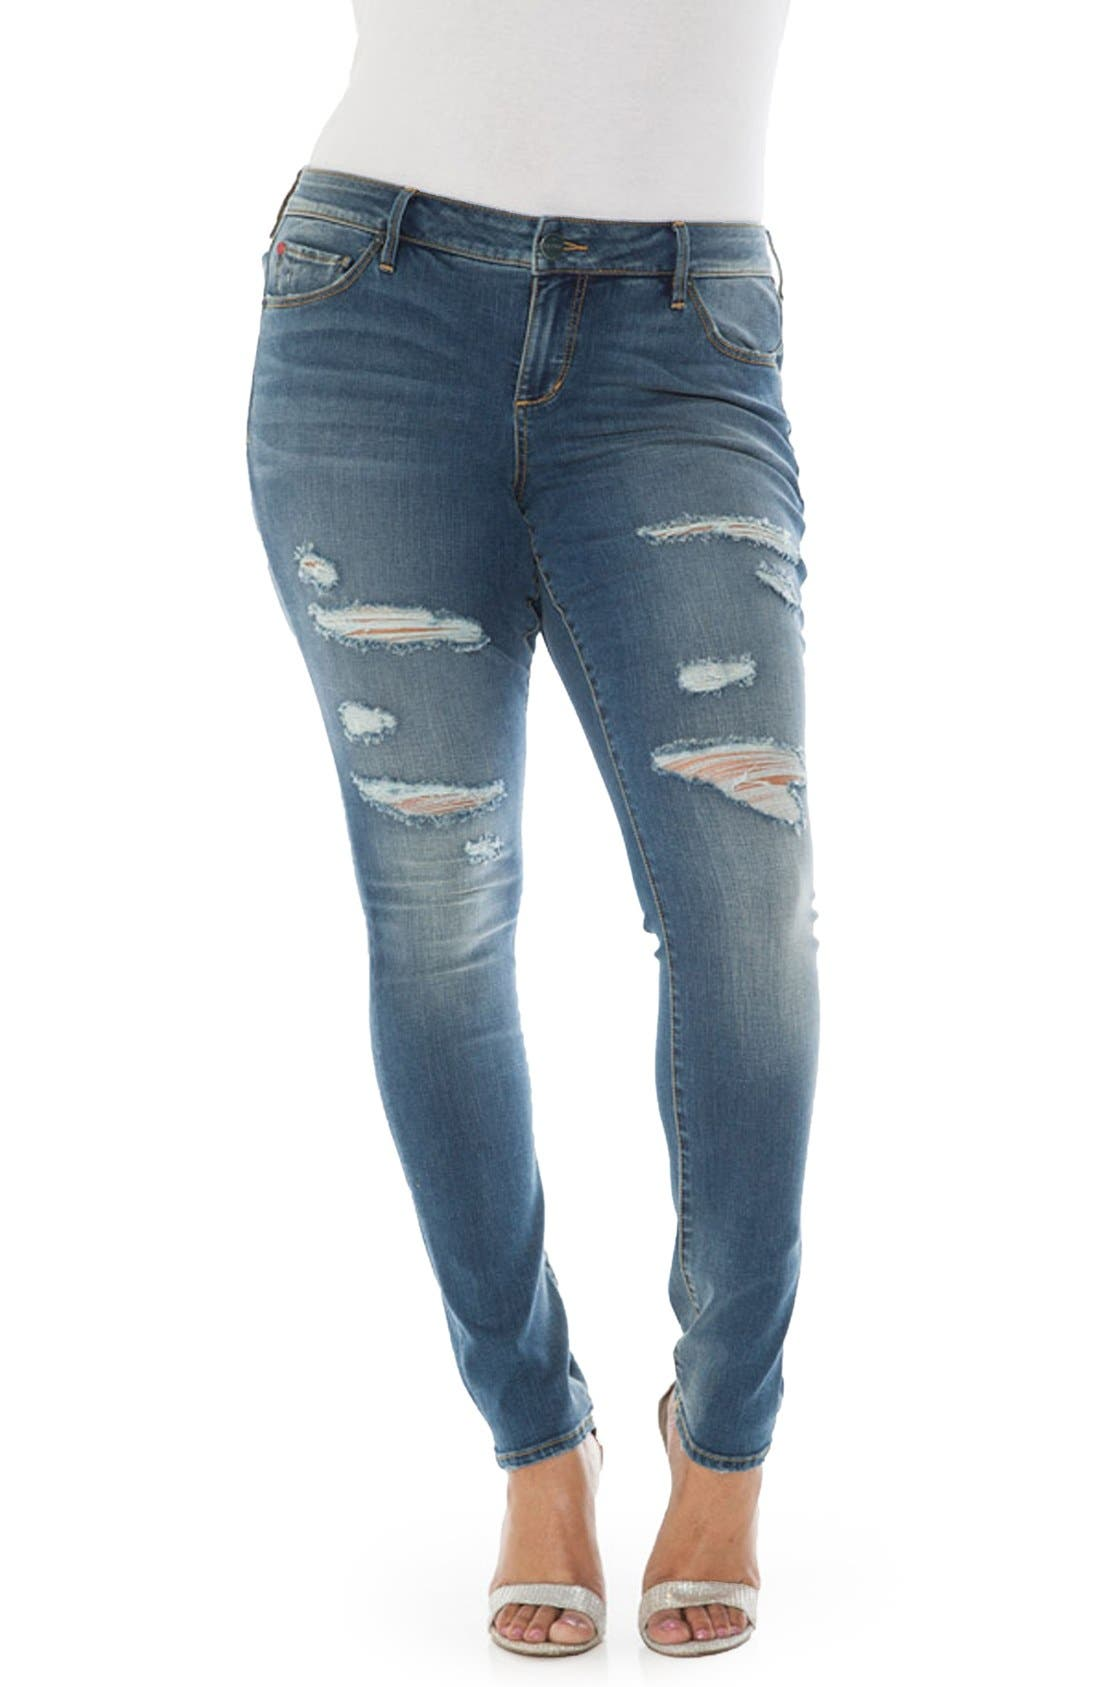 Main Image - SLINK Jeans Ripped Stretch Skinny Jeans (Plus Size)